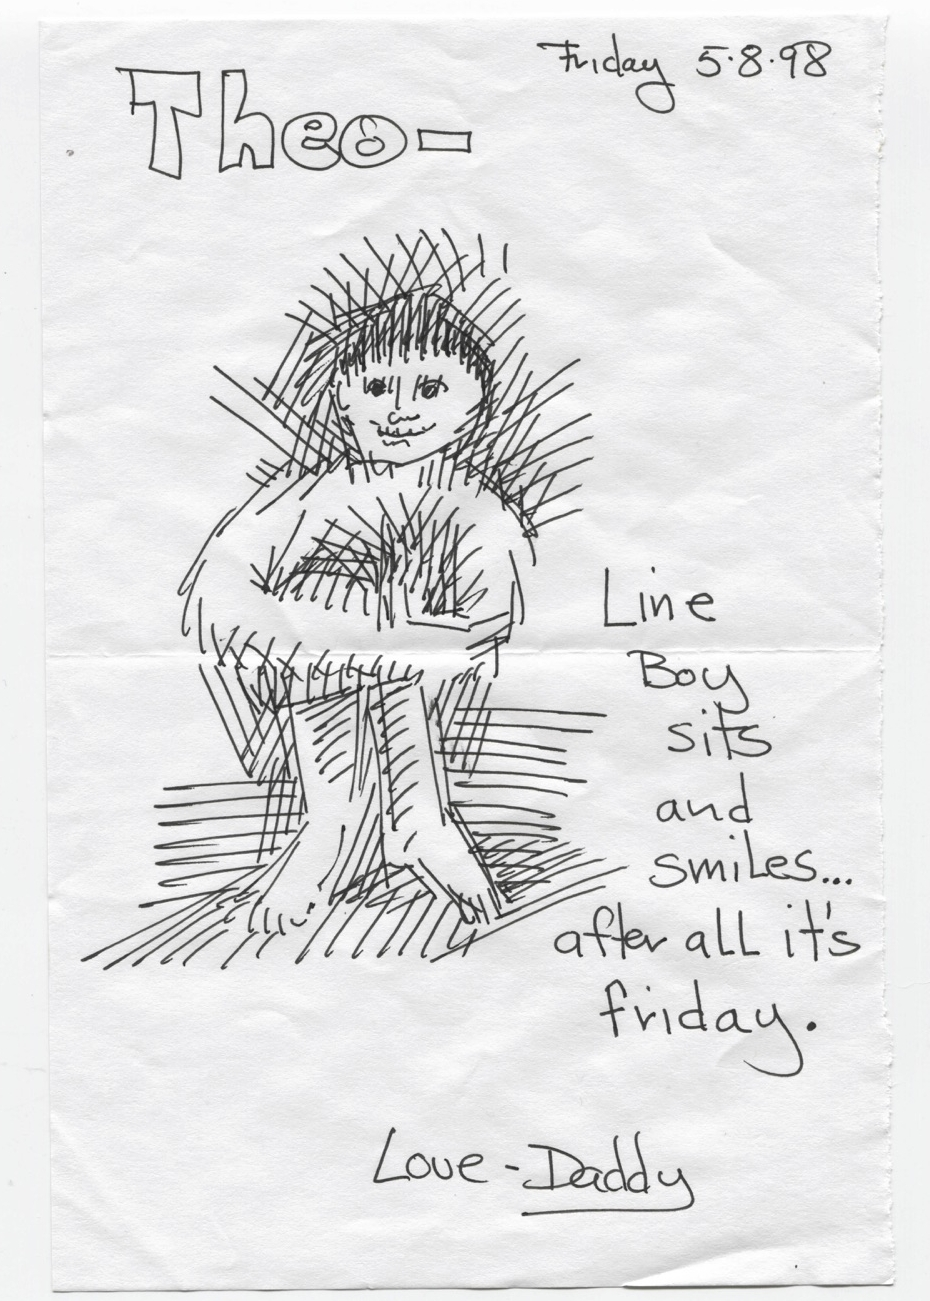 Line boy sits and smiles... after all it's Friday.